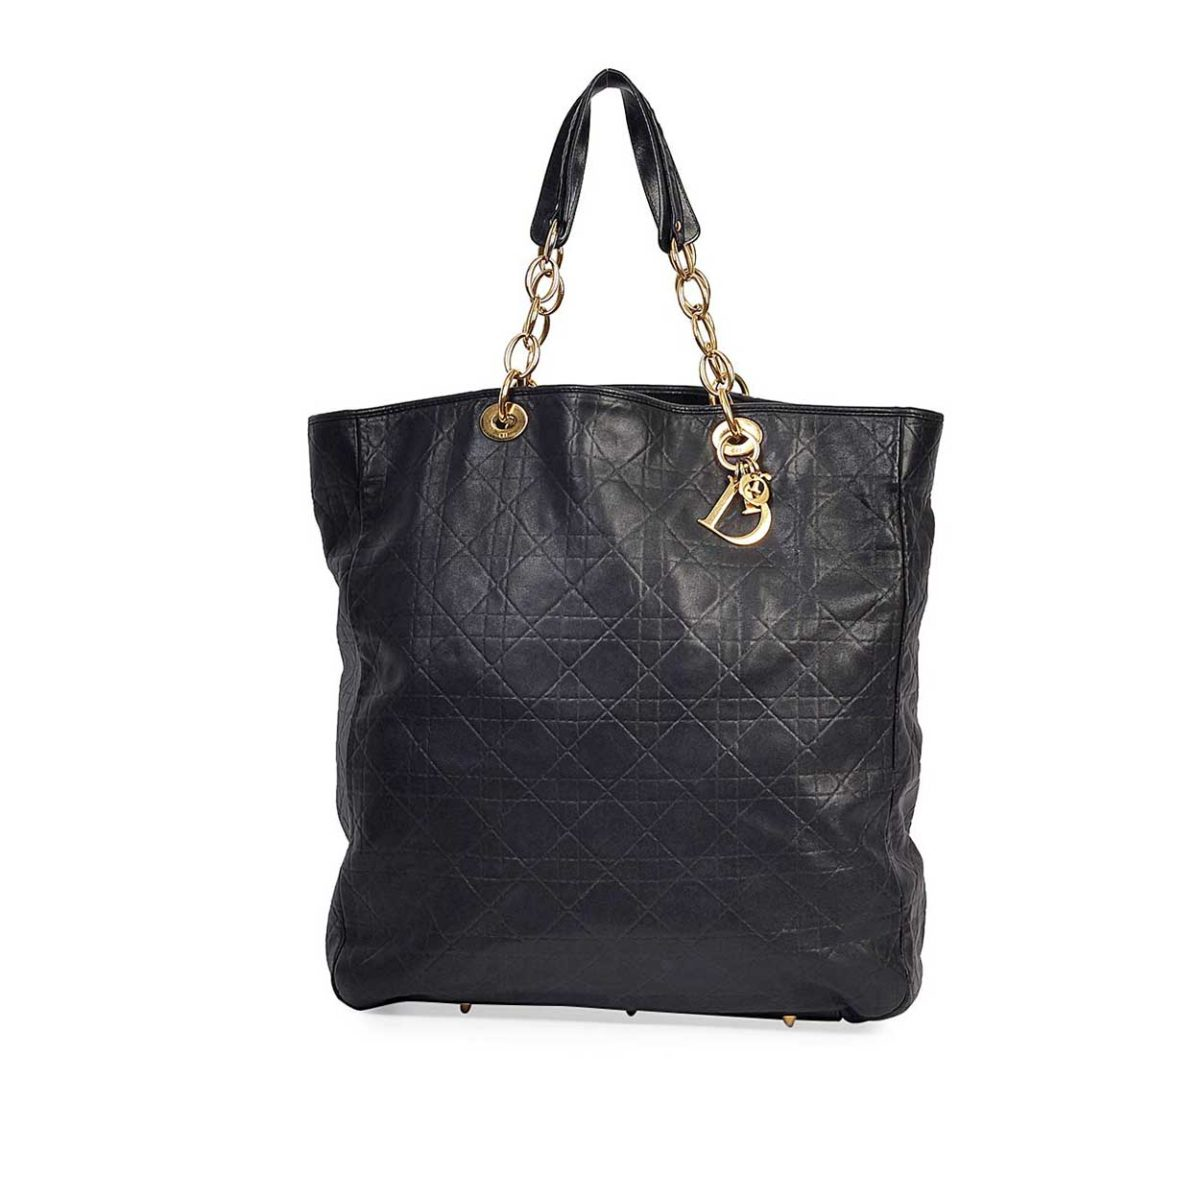 CHRISTIAN DIOR Cannage Quilted Lambskin Leather Soft Shopping Tote ... : dior quilted bag - Adamdwight.com